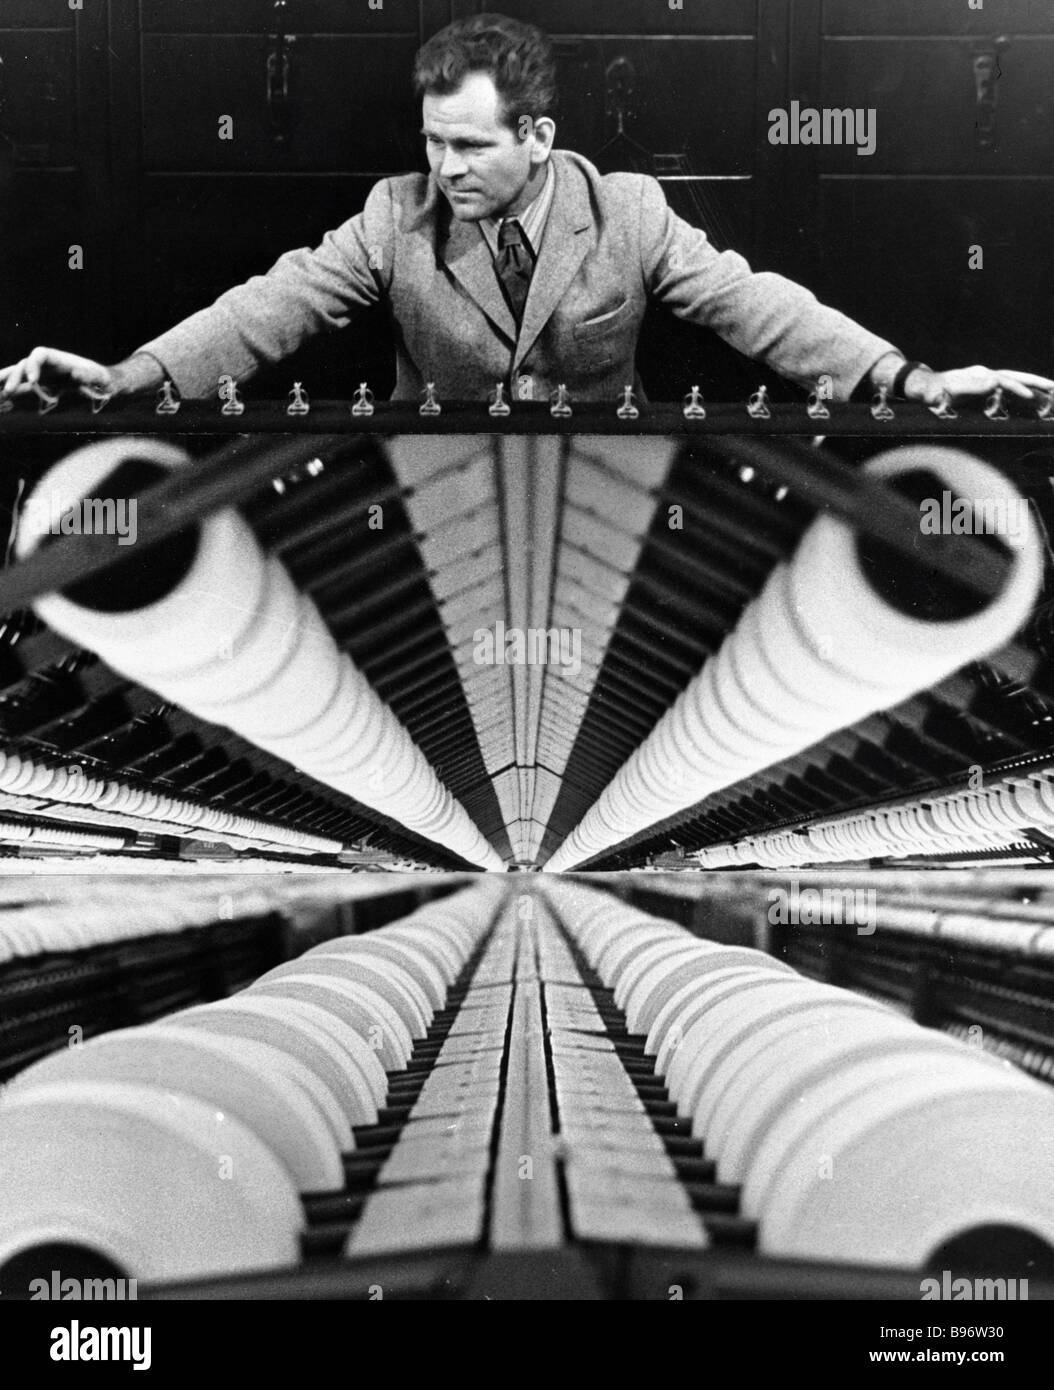 A worker at a textile plant - Stock Image